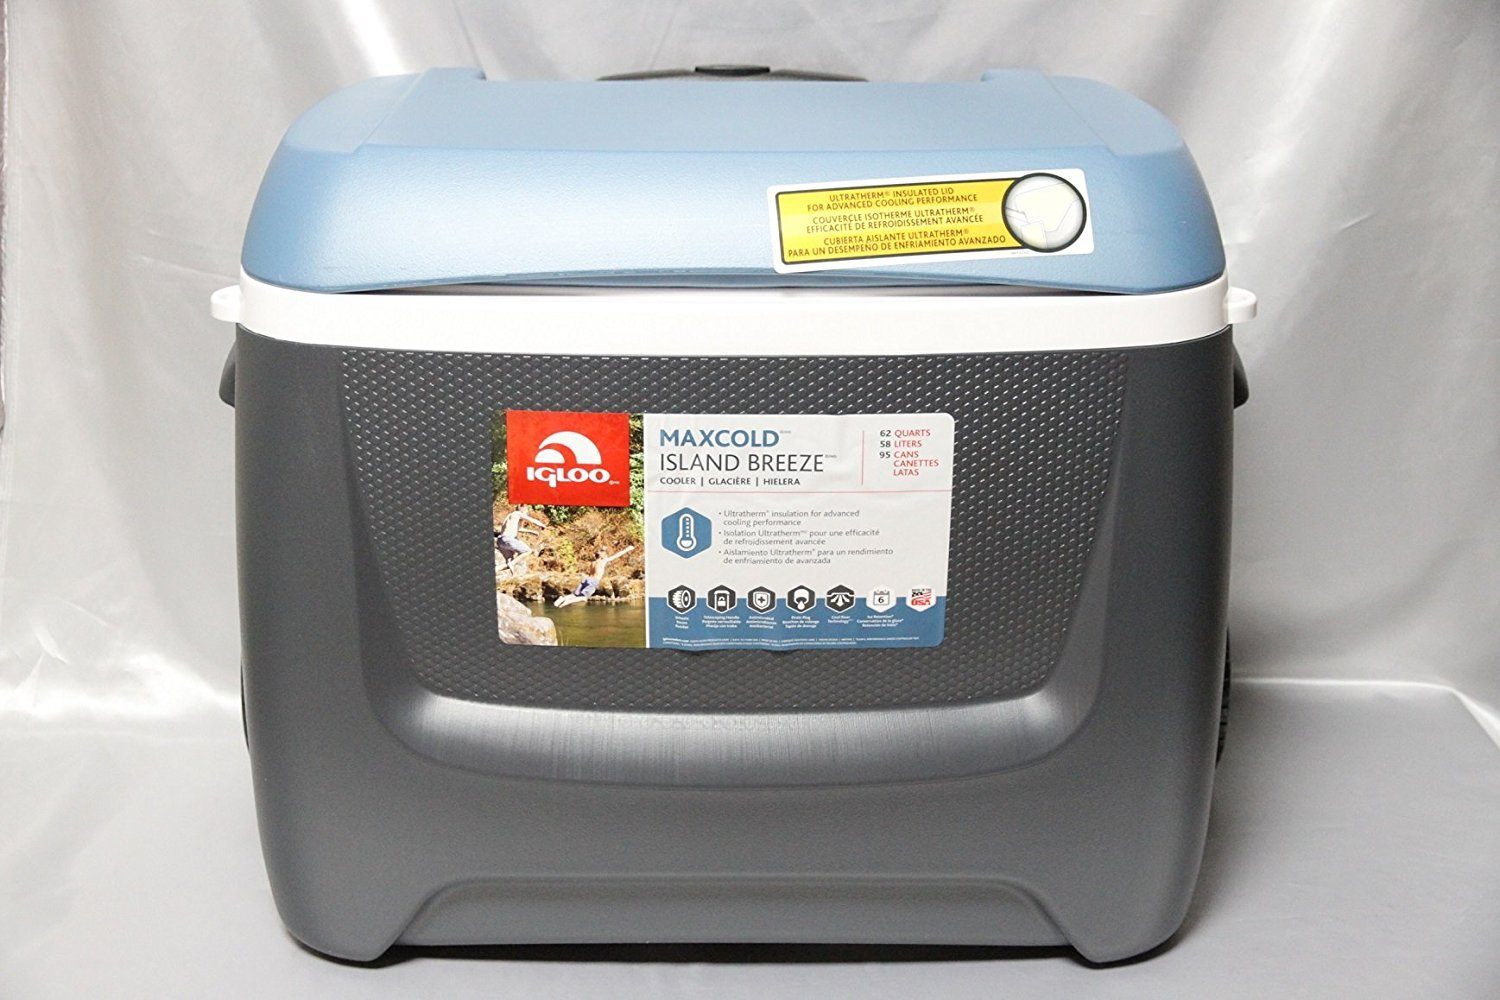 IGloo MaxCold Island Breeze 62 Quart Rolling Cool Box